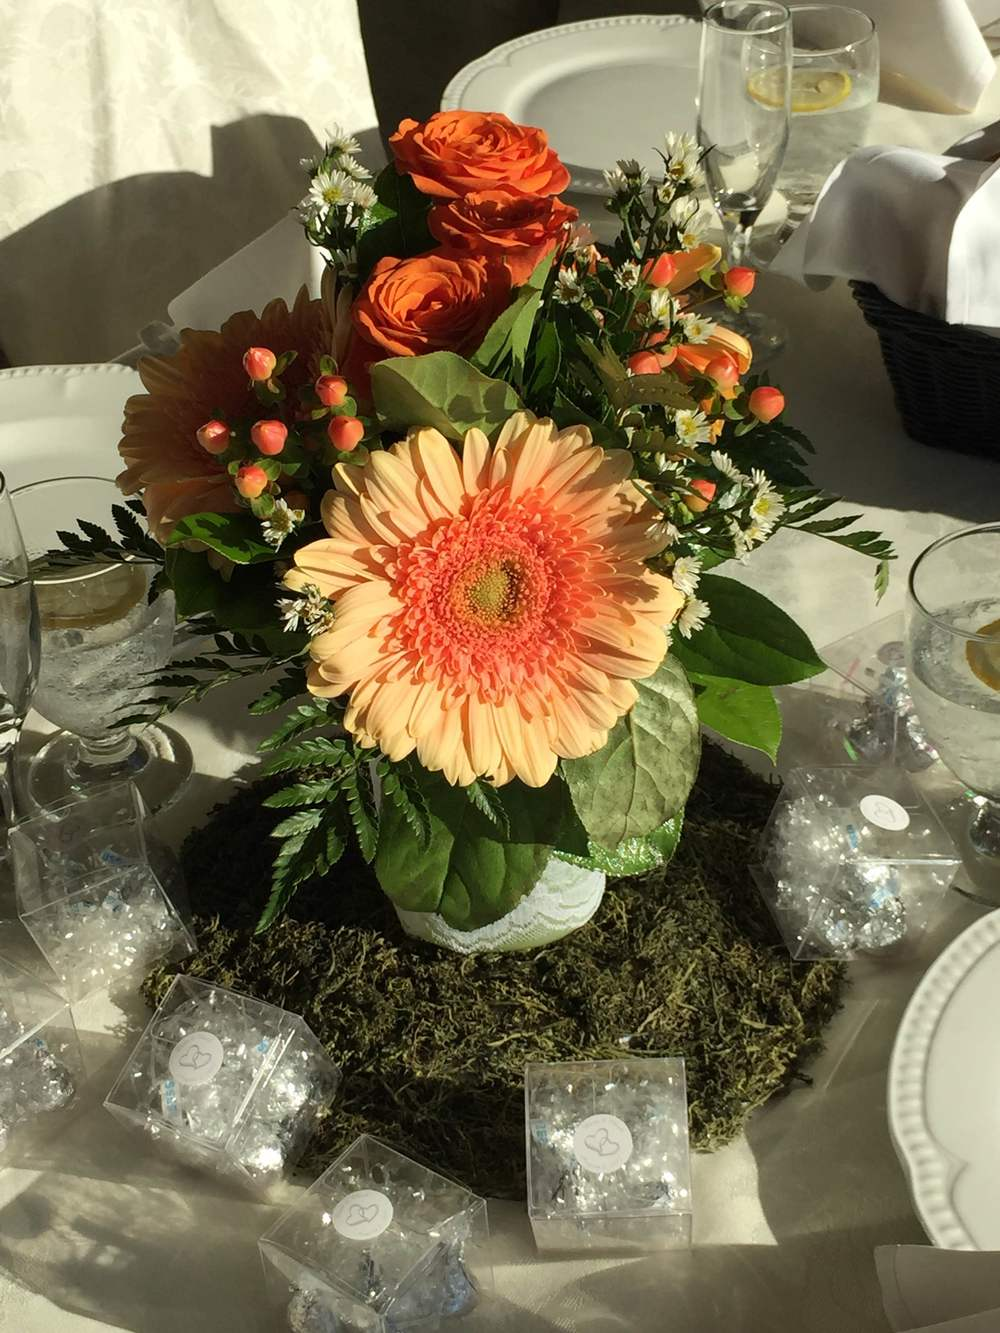 Evelisa Floral & Design's Coral & Mint mason jar Centerpiece.